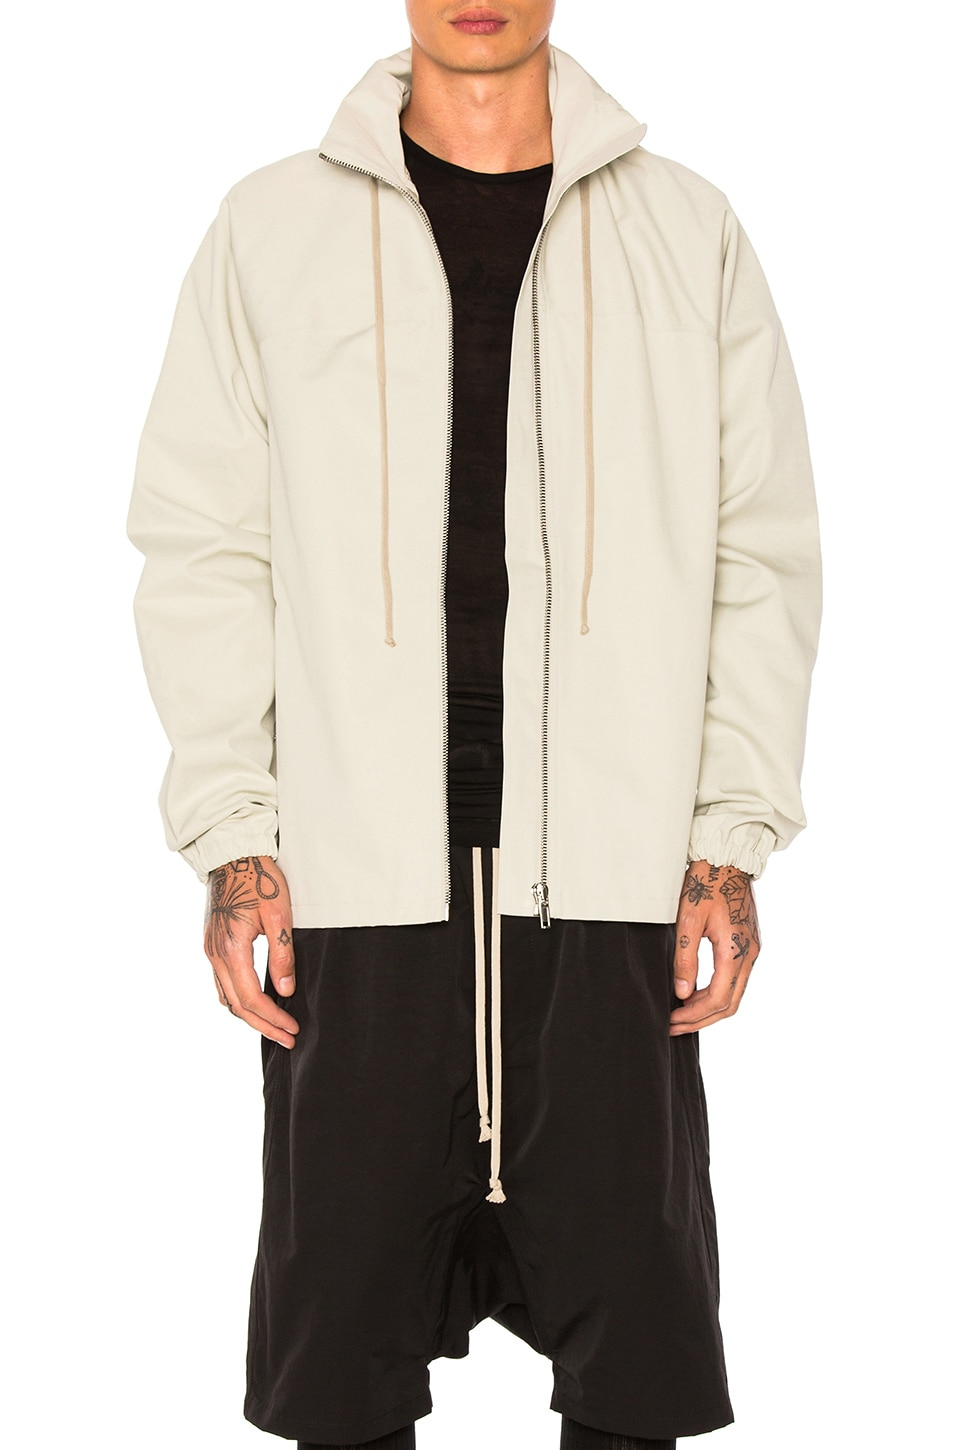 Windbreaker by DRKSHDW by Rick Owens